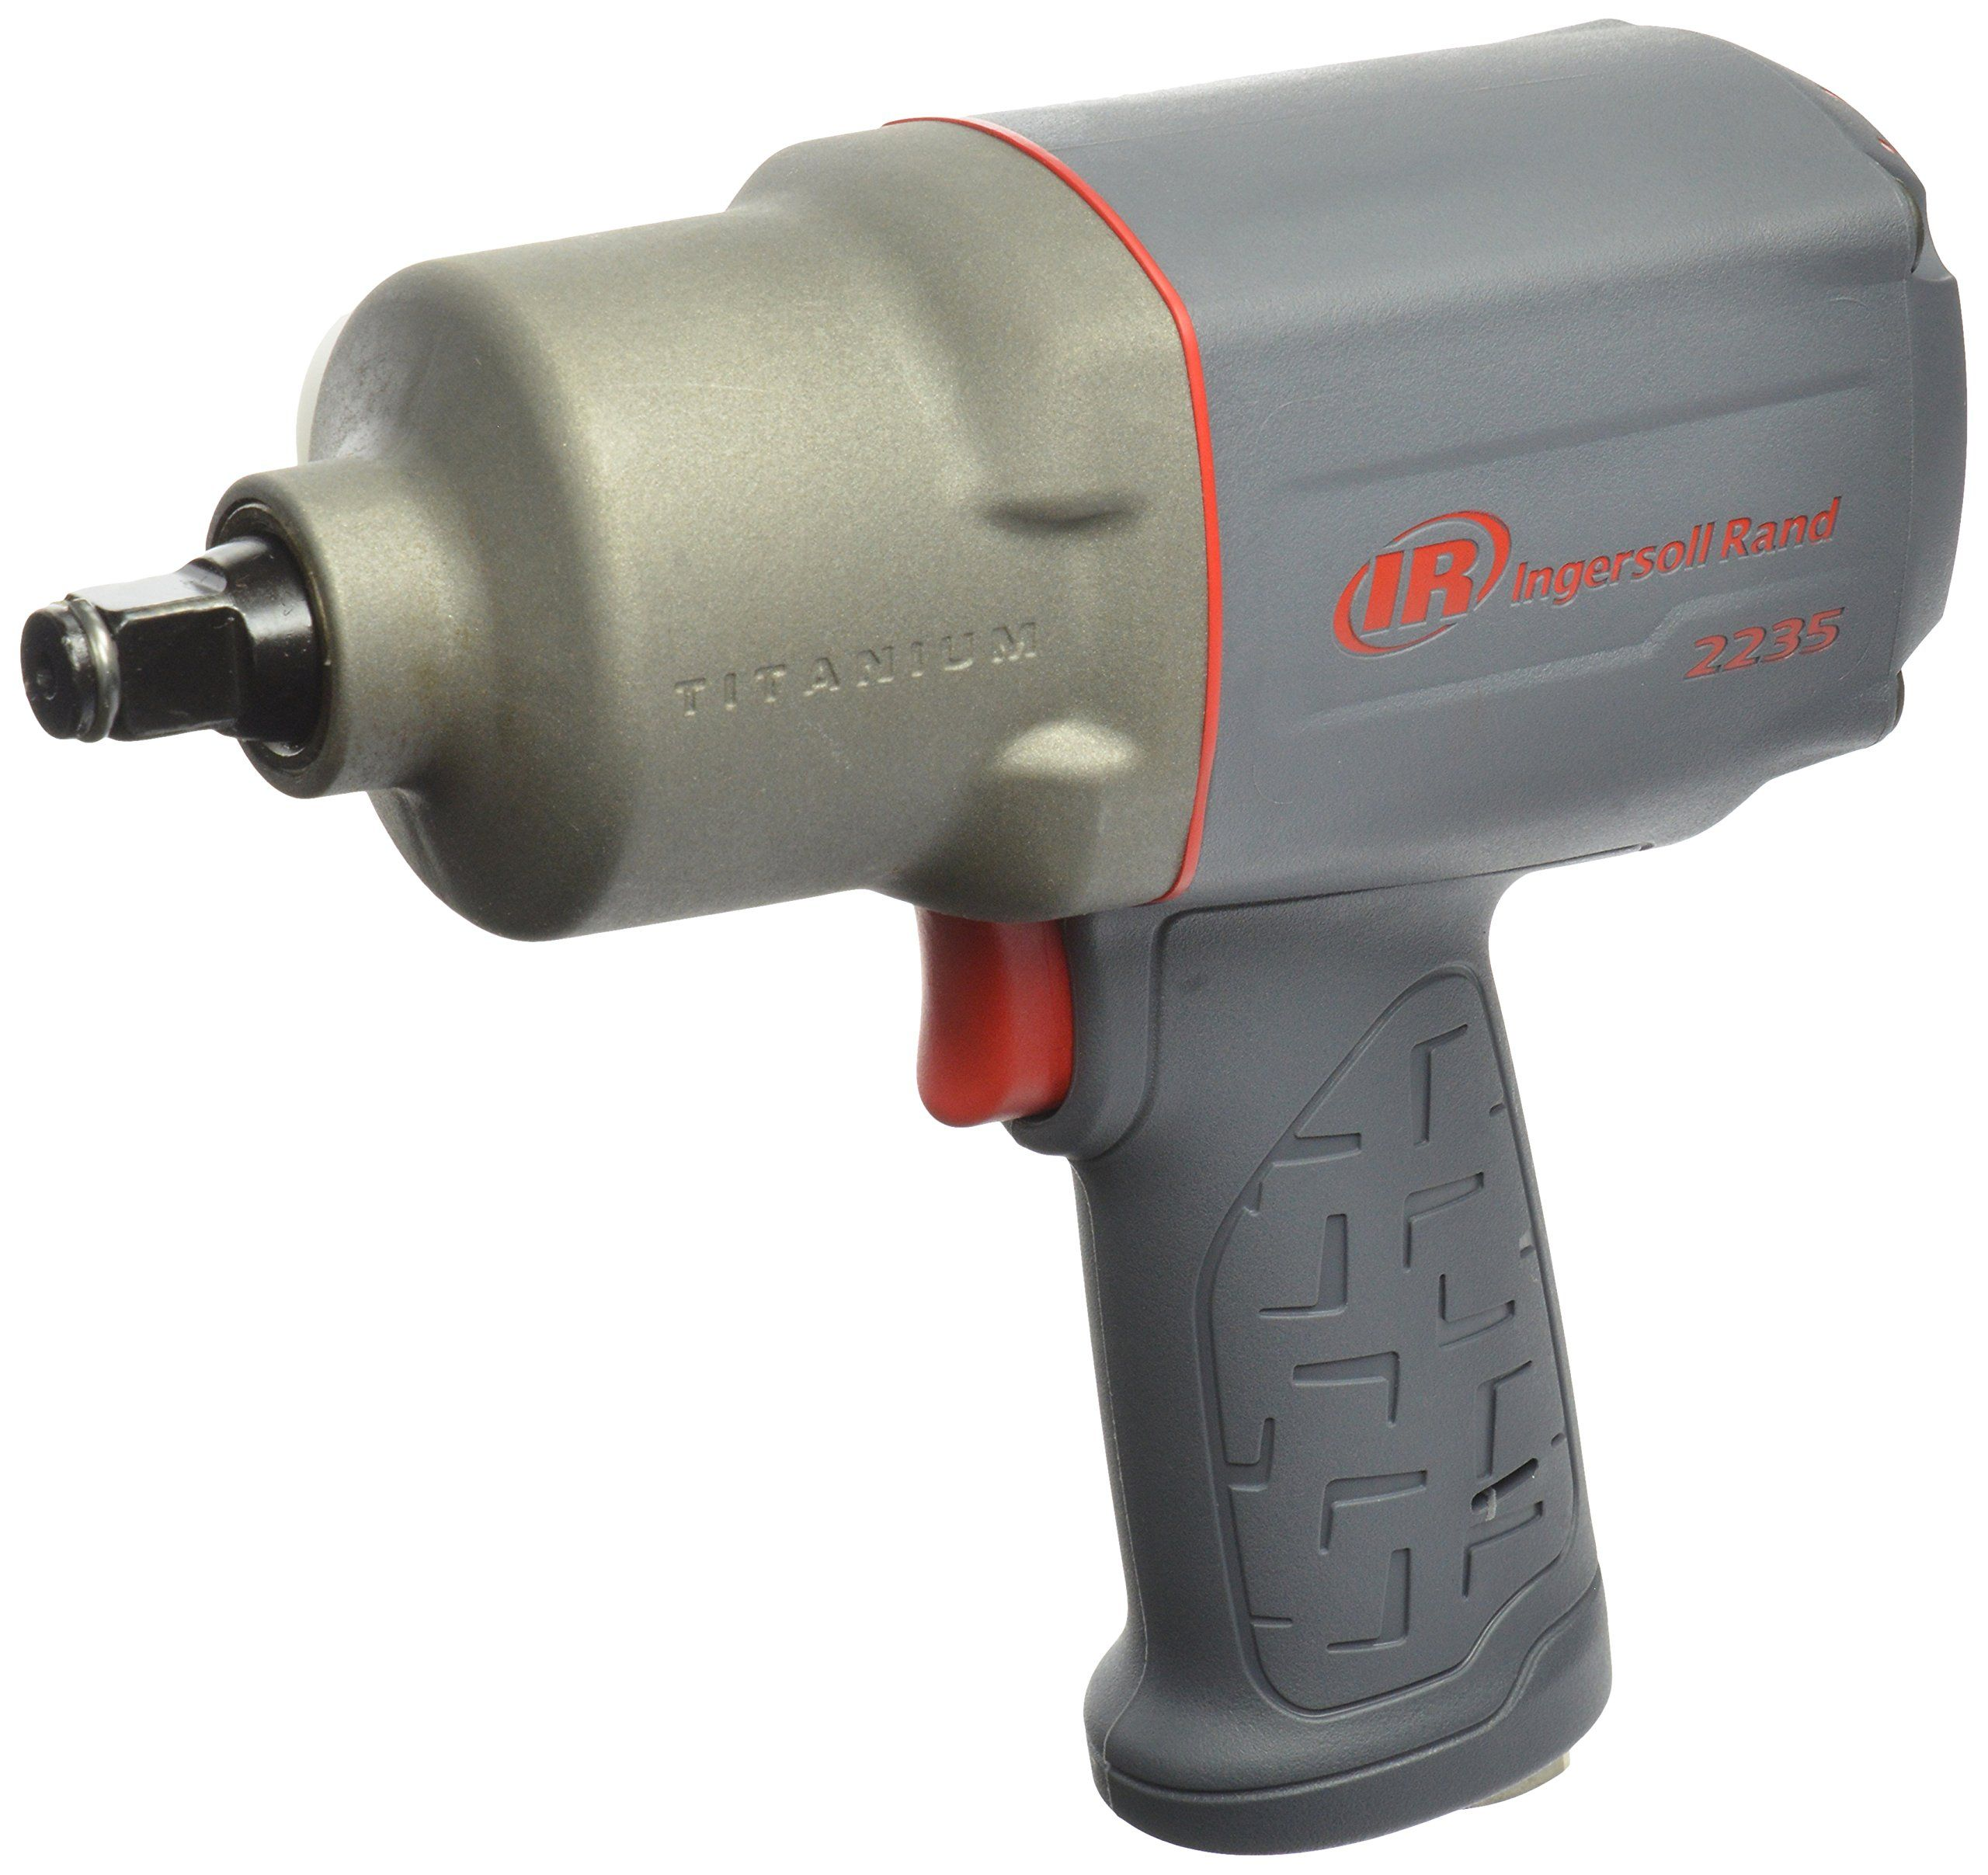 """Ingersoll Rand (2235TIMAX) 1/2"""" Drive Air Impact Wrench"""